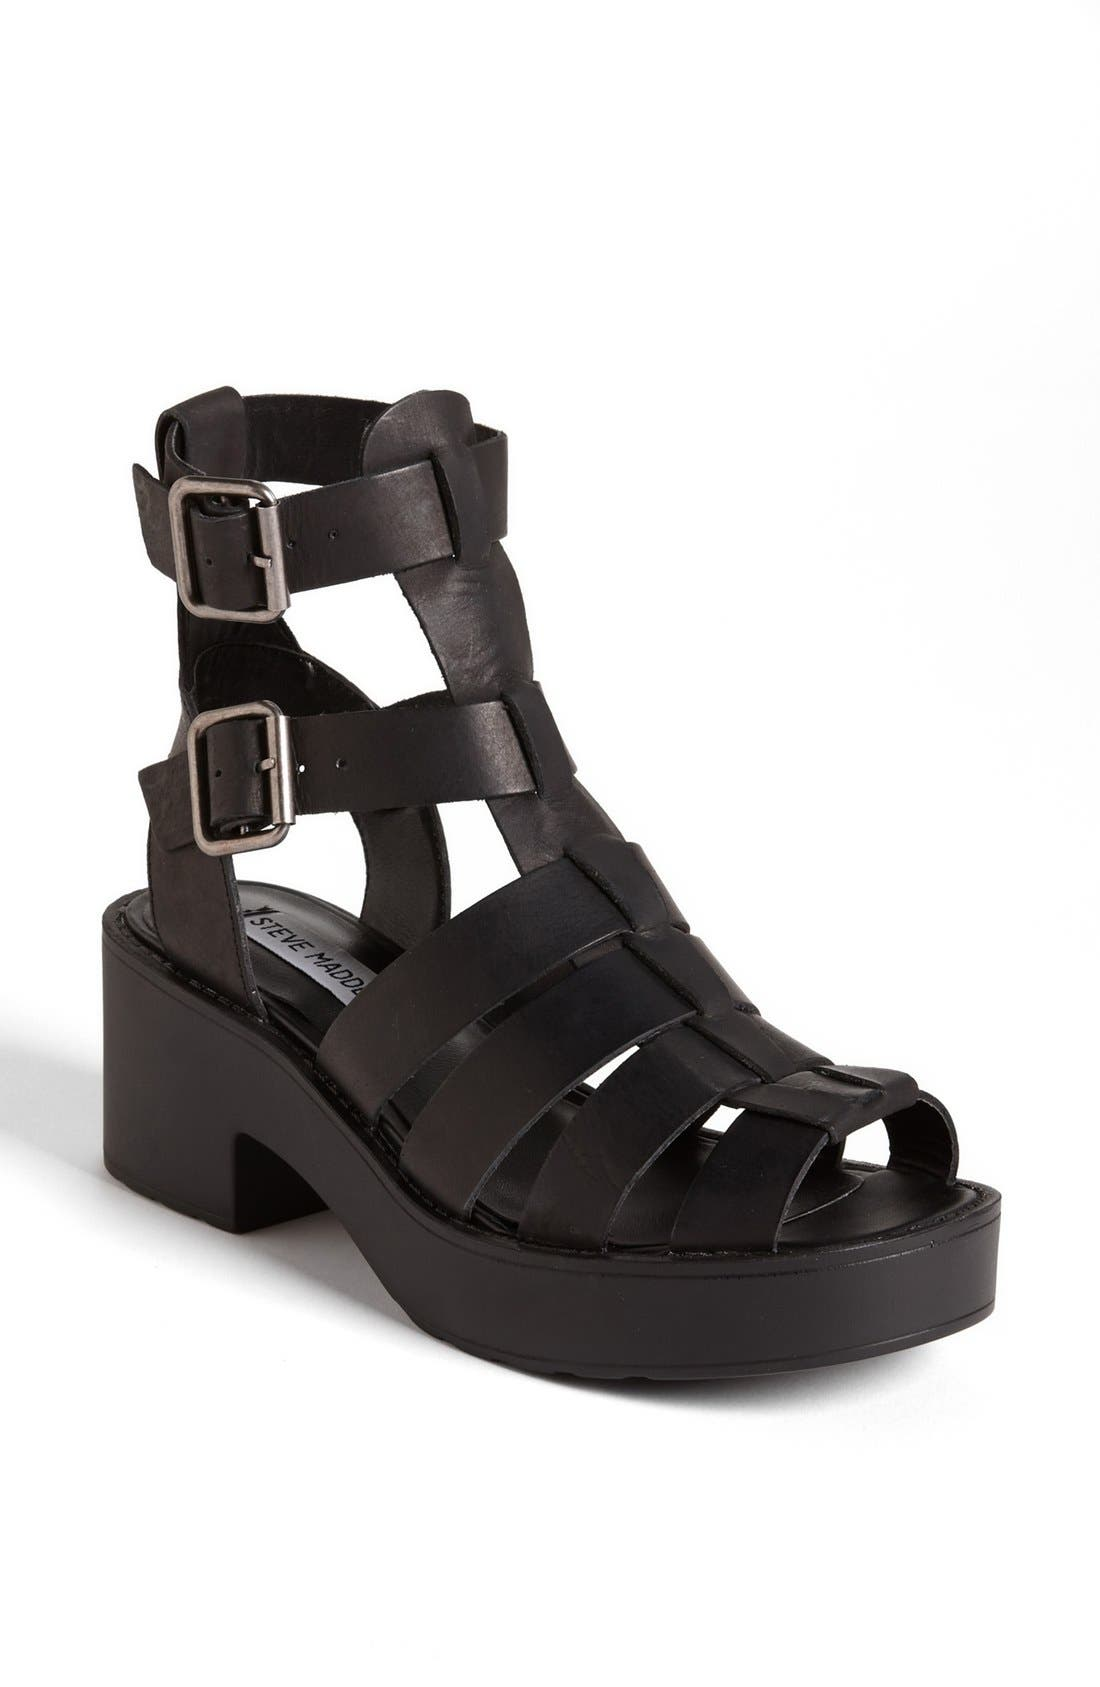 Alternate Image 1 Selected - Steve Madden 'Schoolz' Sandal